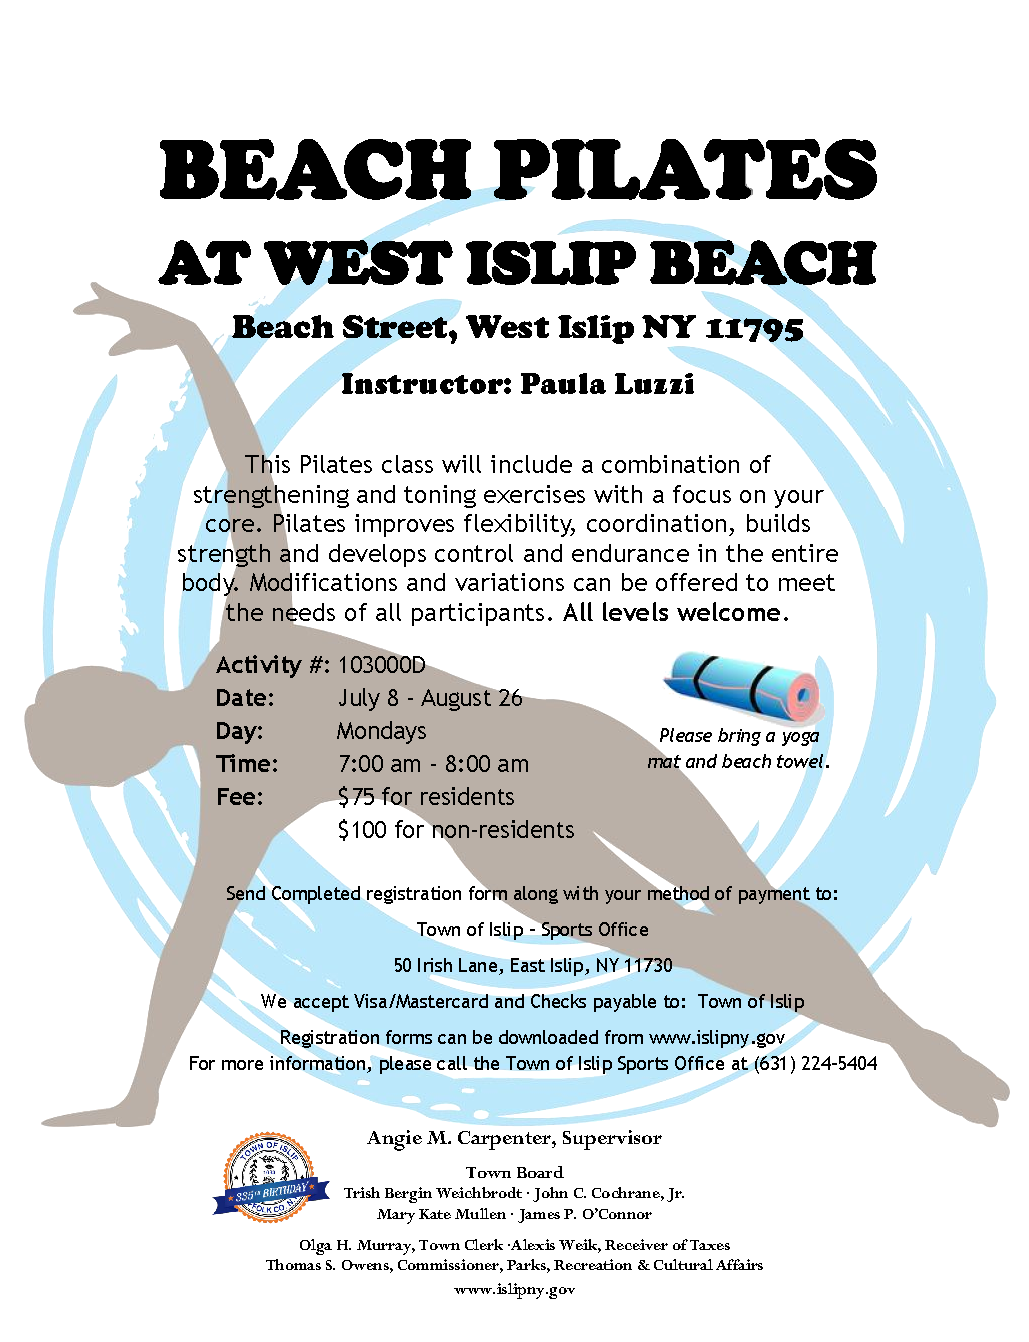 a flyer announcing beach pilates classes,  call (631) 224-5404 for more information.